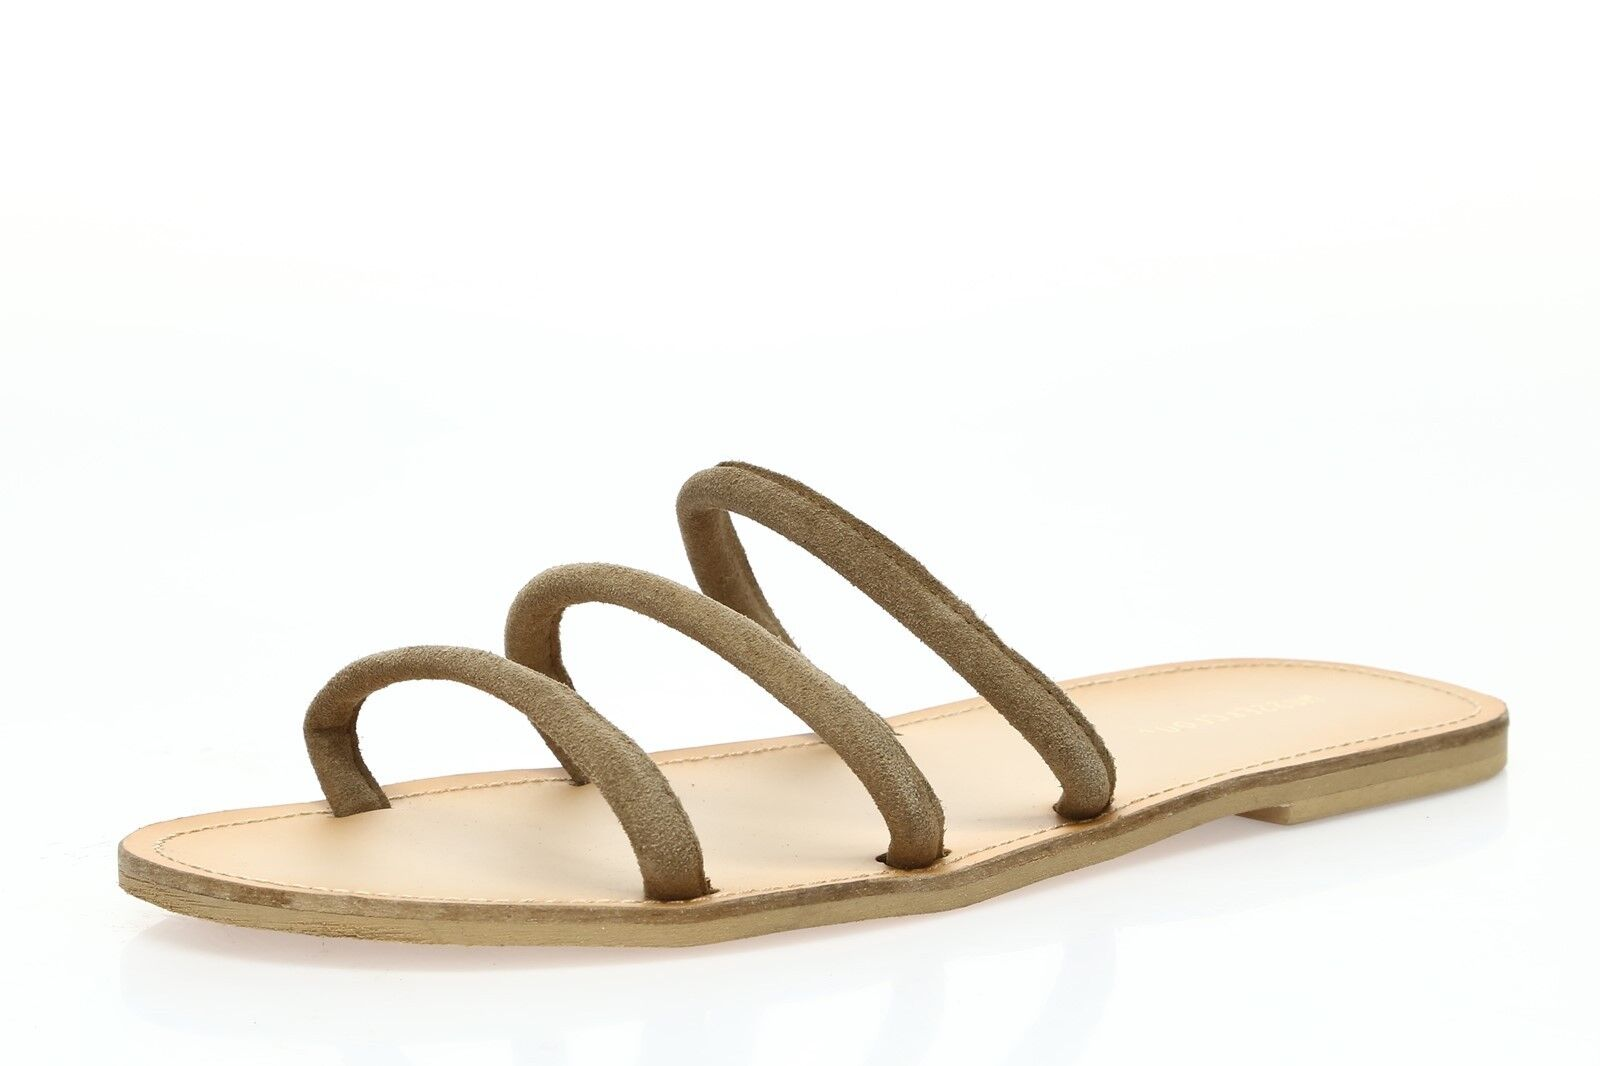 MUSSE & CLOUD Womens 'Narina' Taupe Suede Slide Sandals Sz 12 - 232431